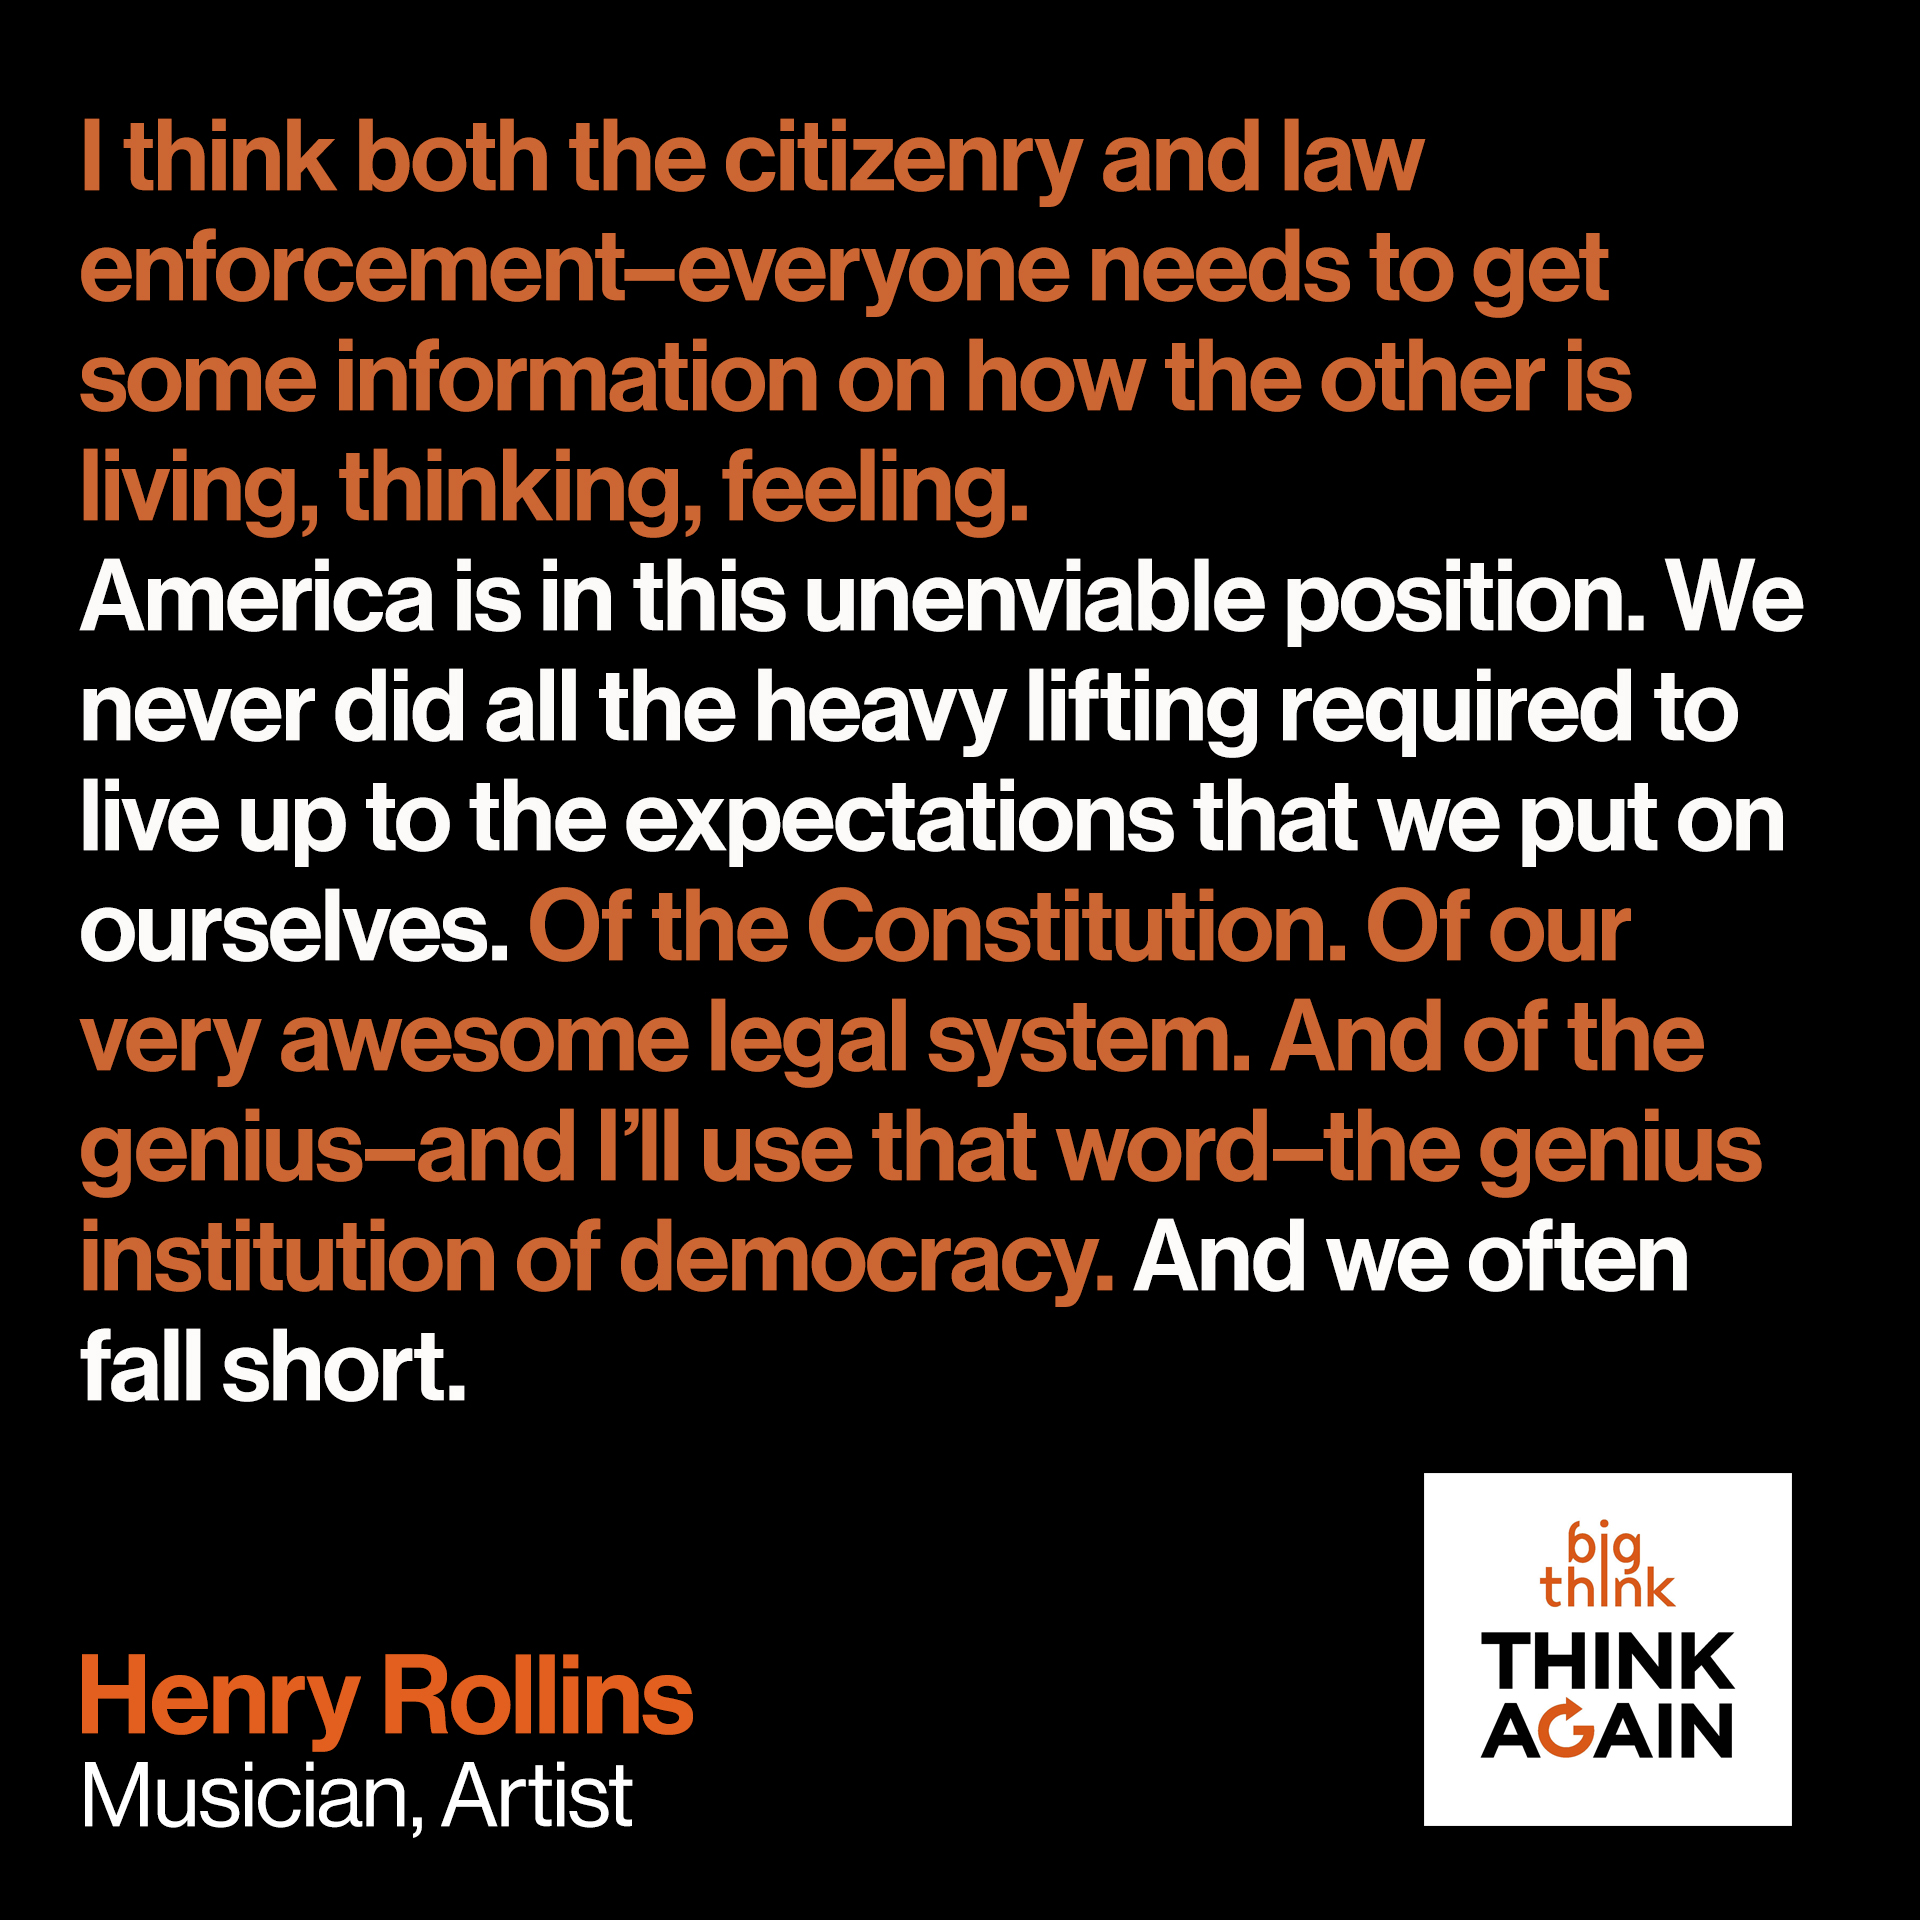 Henry Rollins Quote: I think both the citizenry and law enforcement––everyone needs to get some information on how the other is living, thinking, feeling.  America is in this unenviable position of––we never did all the heavy lifting required to live up to the expectations that we put on ourselves. Of the Constitution. Of our very awesome legal system. And of the genius––and I'll use that word-–the genius institution of democracy. And we often fall short.